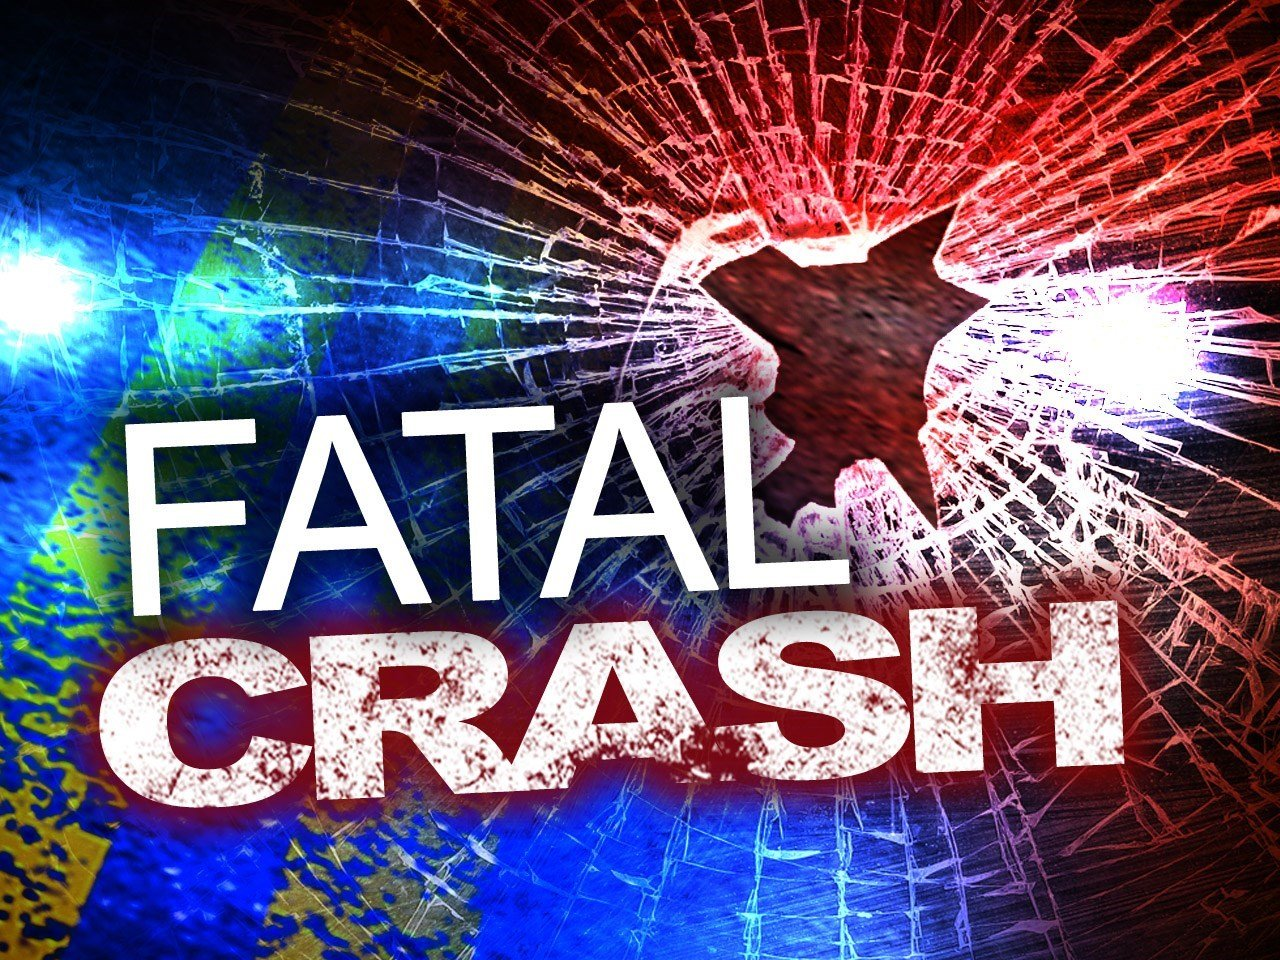 Dead, 1 Injured In Wrong-Way Crash In Pierce County, Wis.